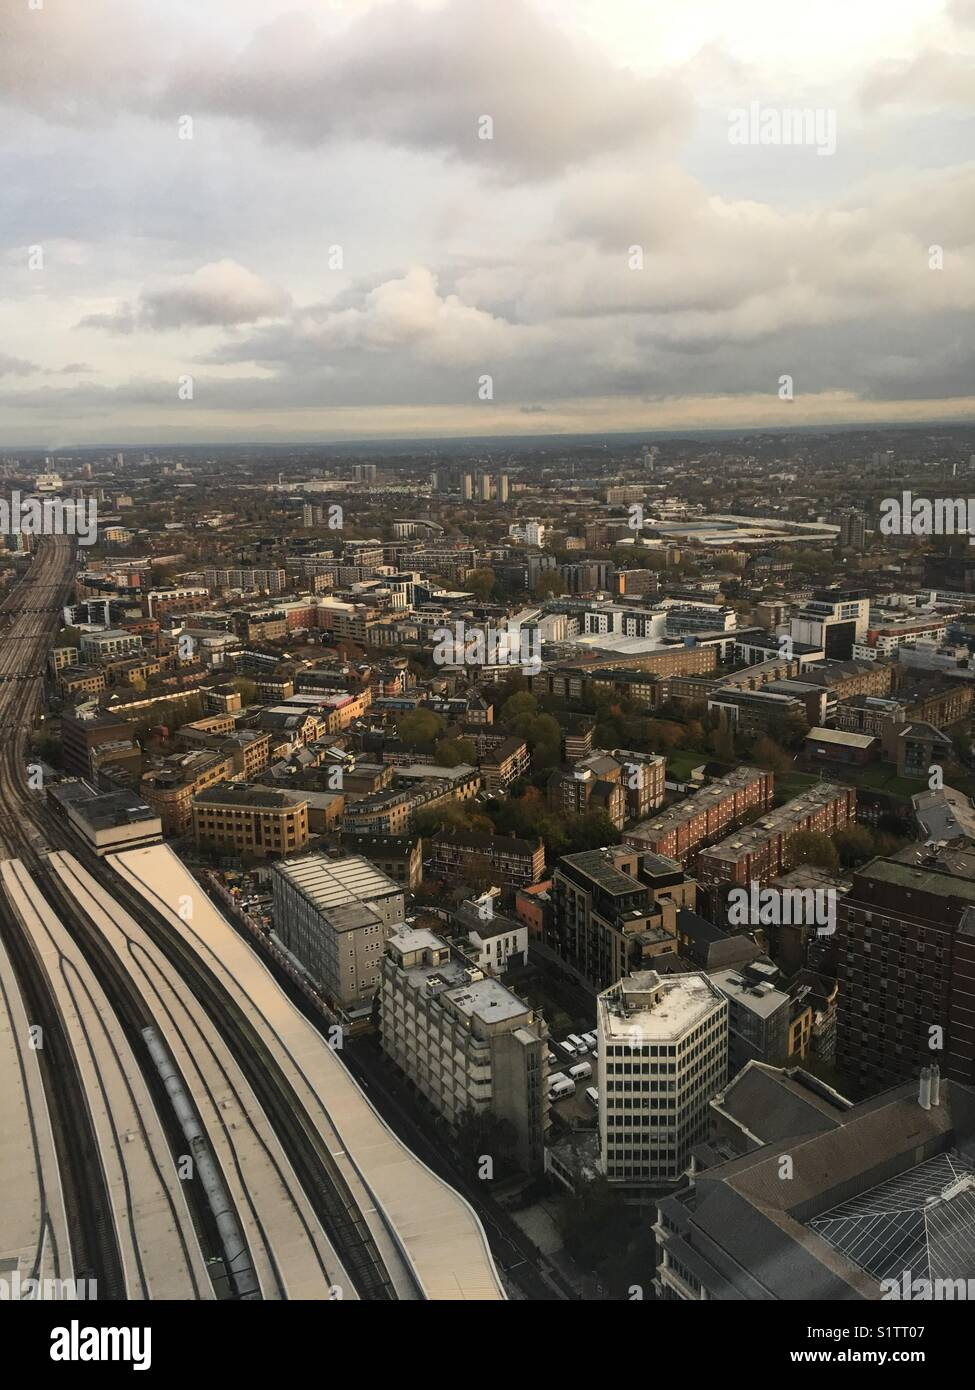 London from above - Stock Image